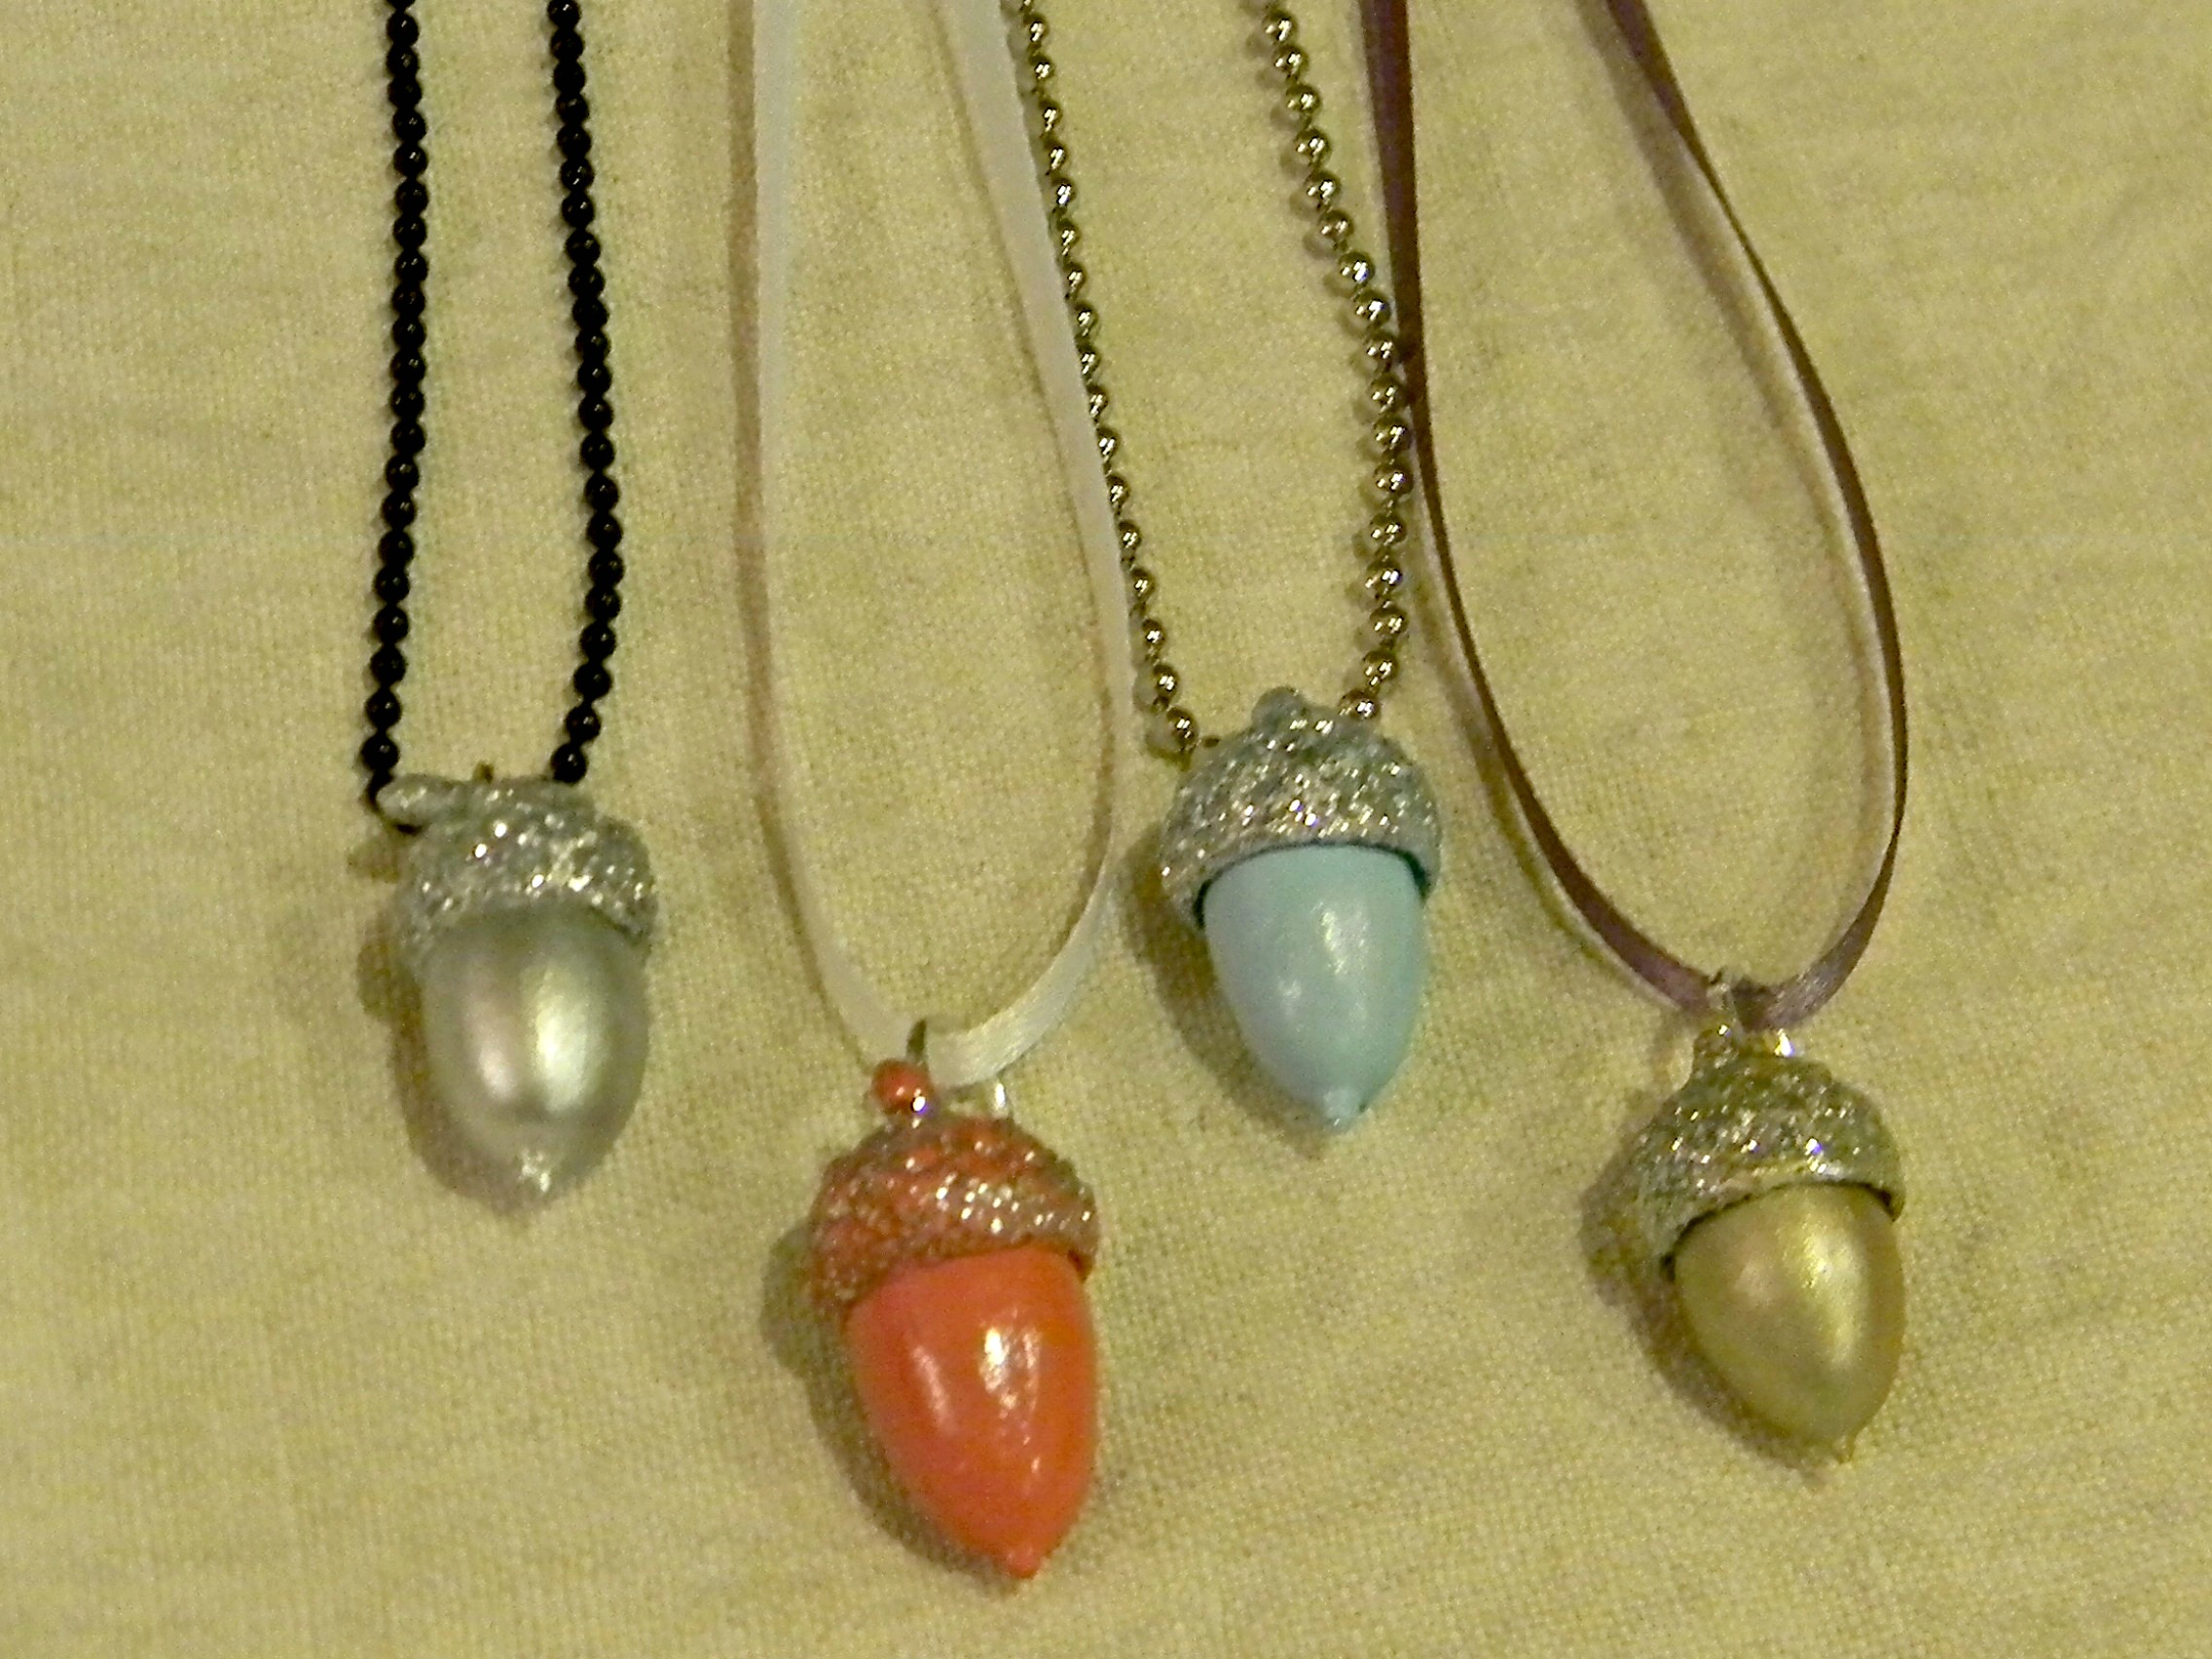 painted acorn necklaces organize and decorate everything